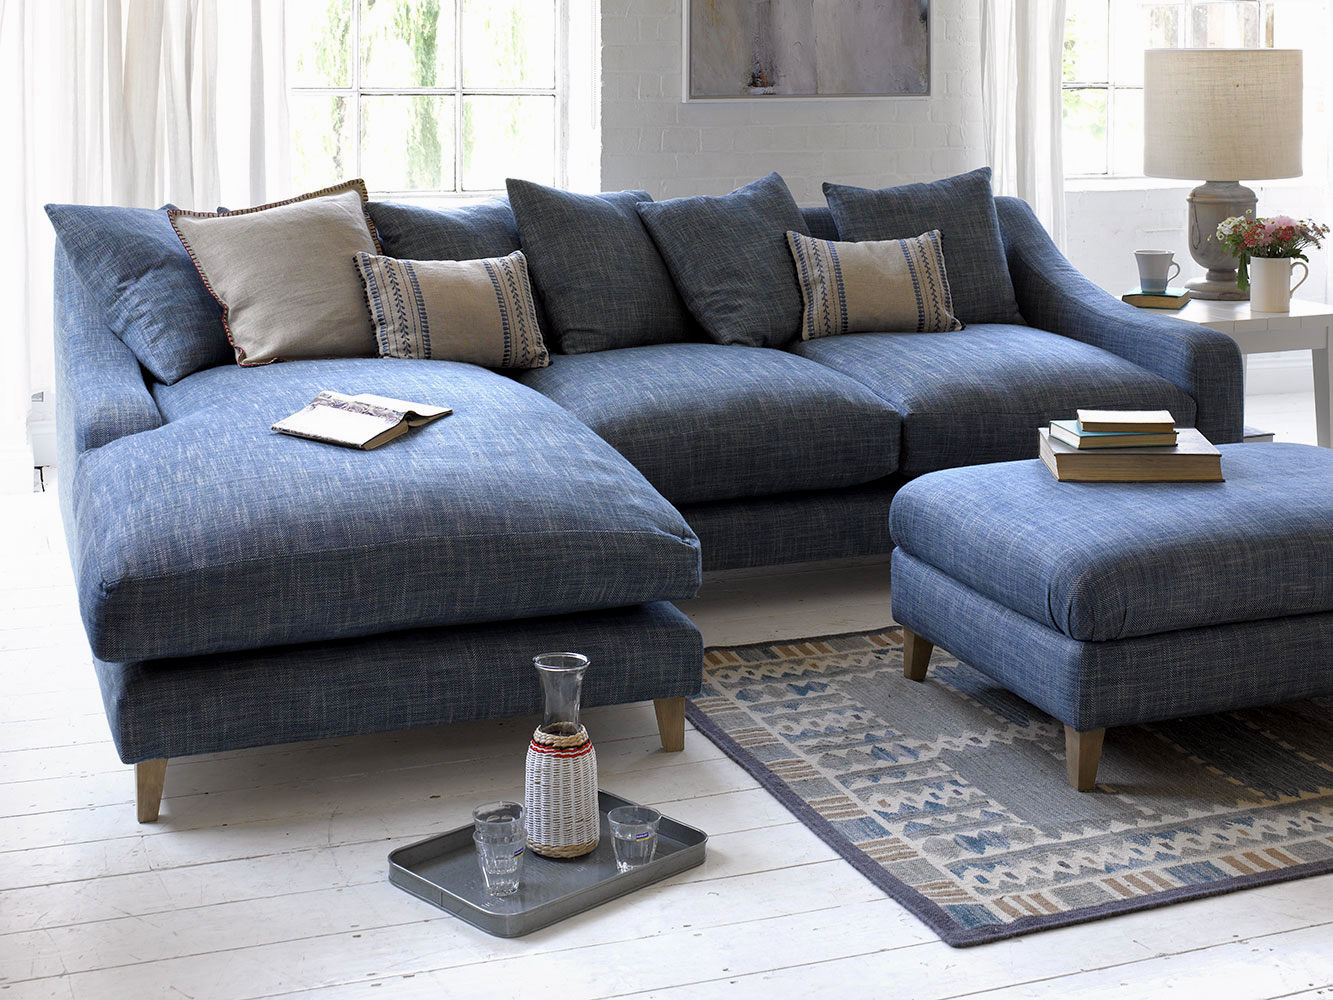 latest crate and barrel sofas gallery-Top Crate and Barrel sofas Inspiration